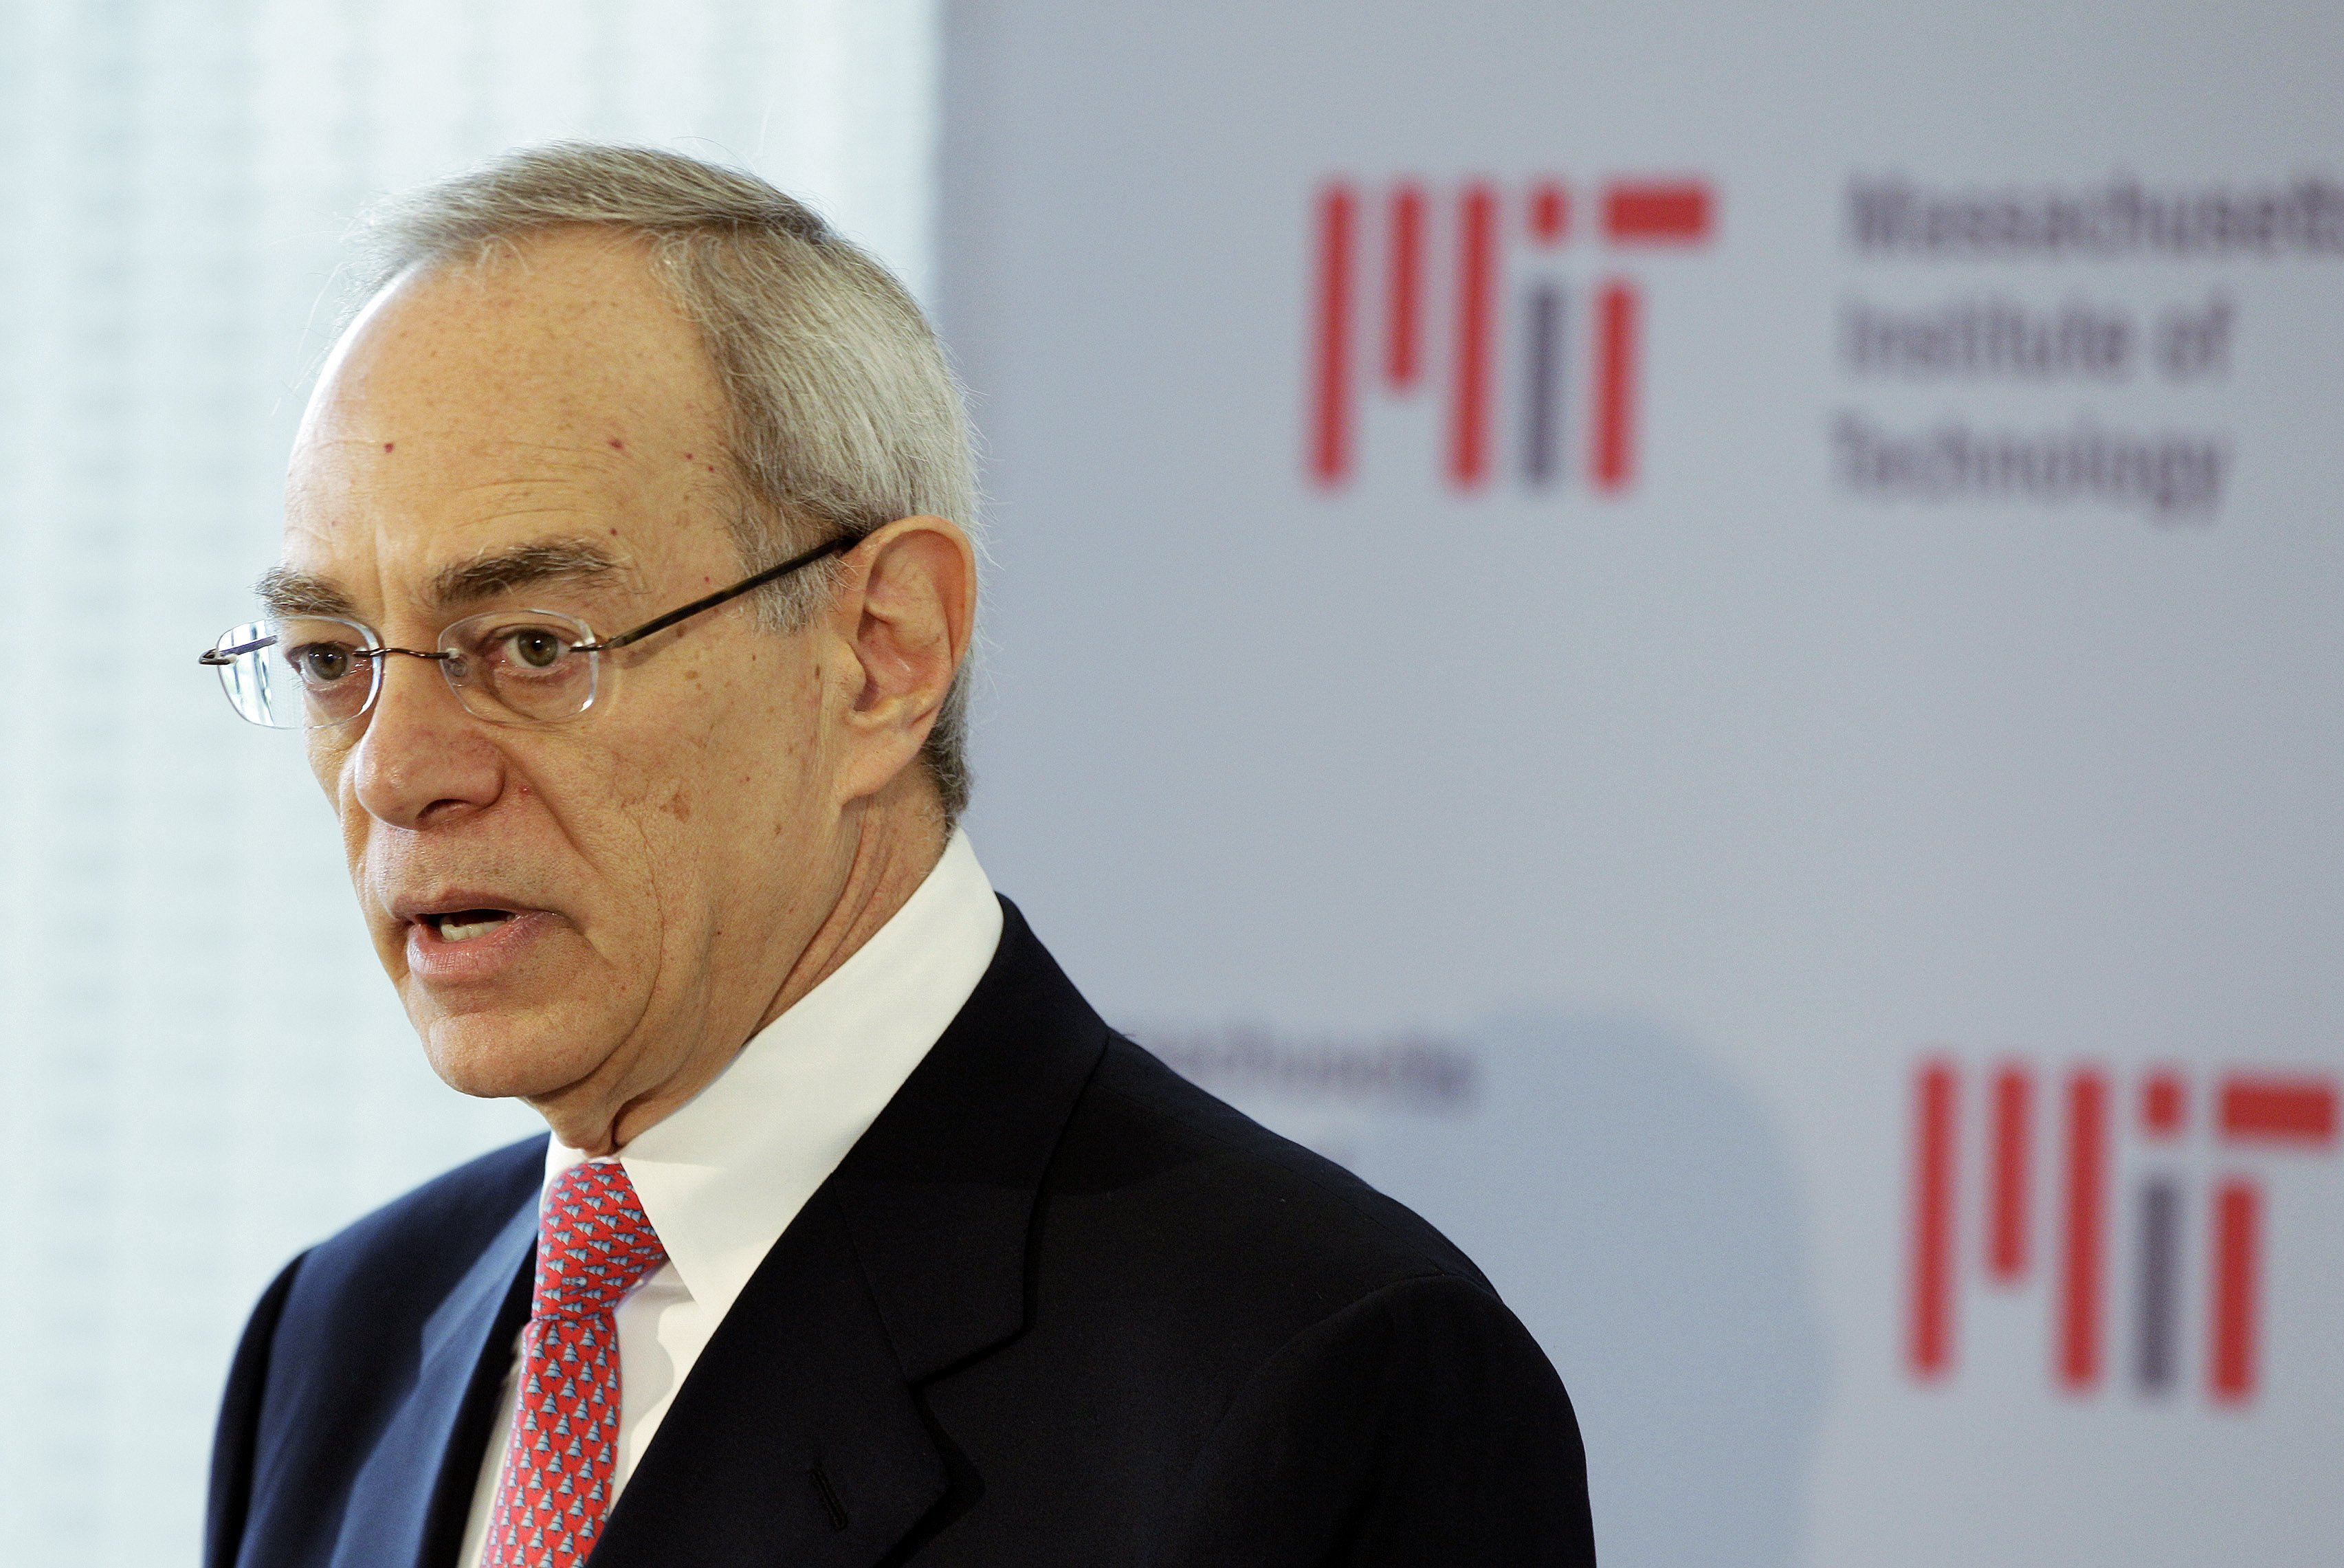 MIT president says the culture that allowed the school's mistakes around Jeffrey Epstein has prevailed 'too long'